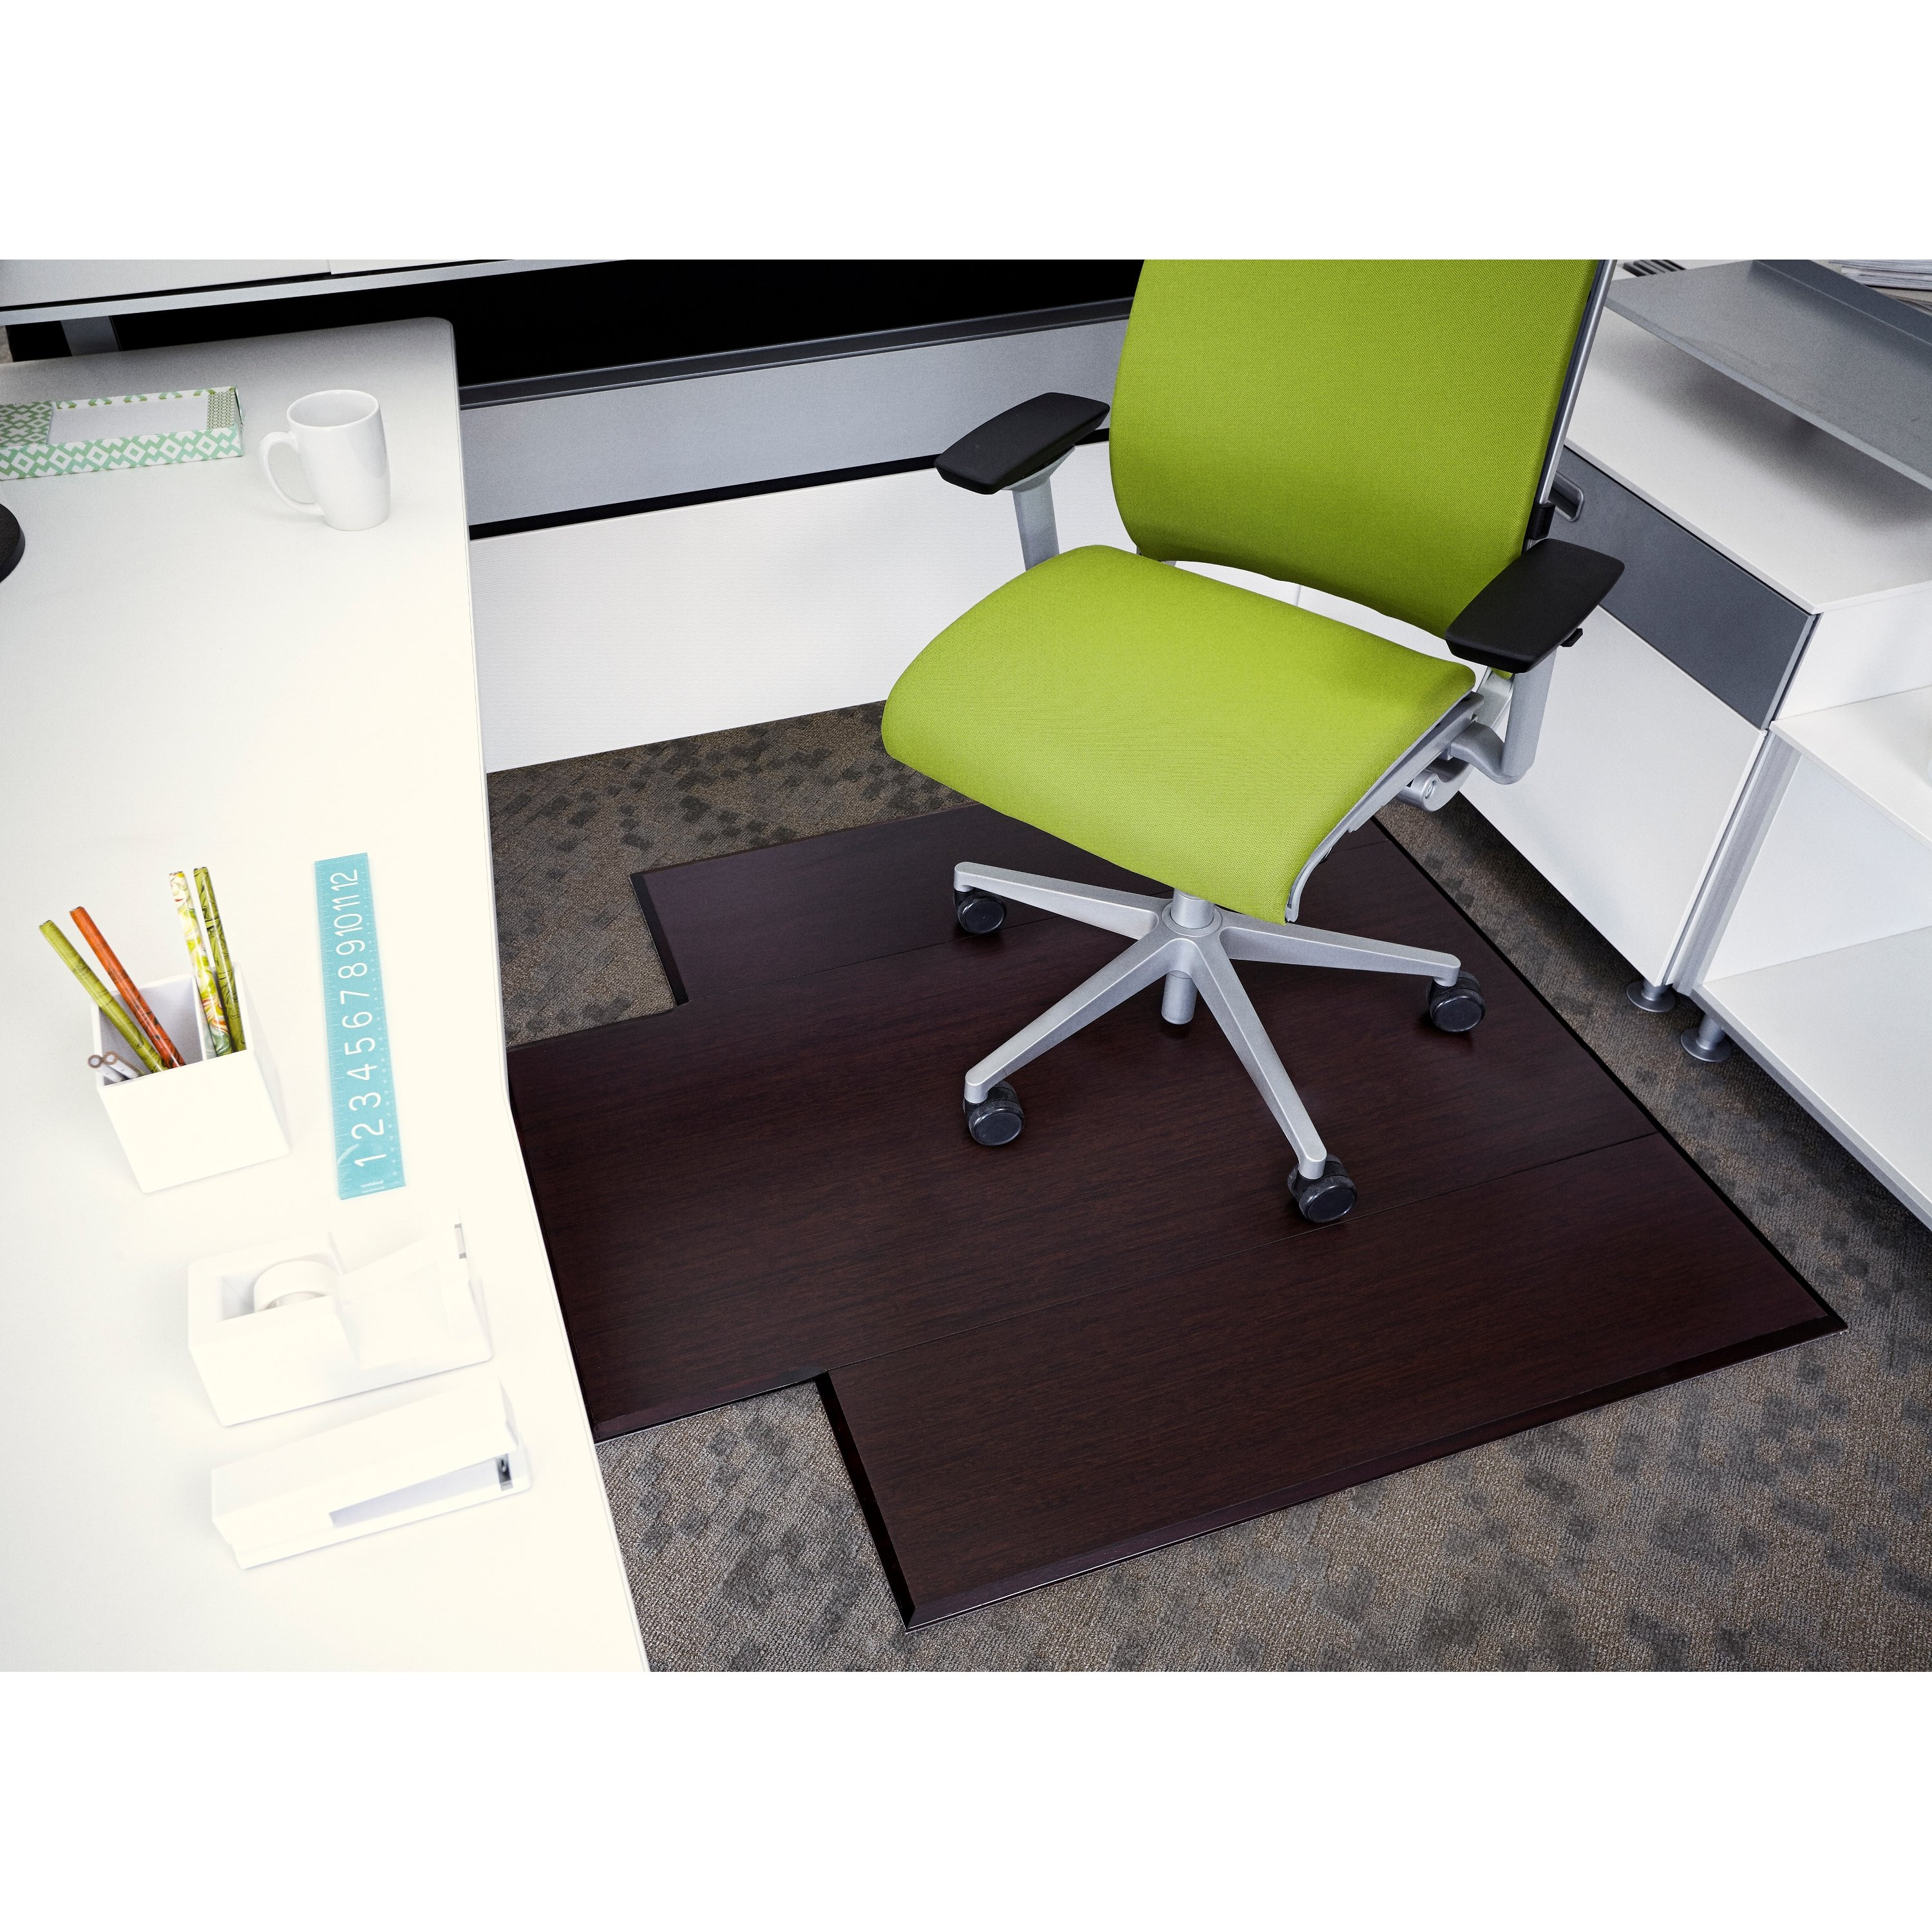 Best ideas about Office Chair Mats . Save or Pin Wildon Home Executive Bamboo fice Chair Mat & Reviews Now.